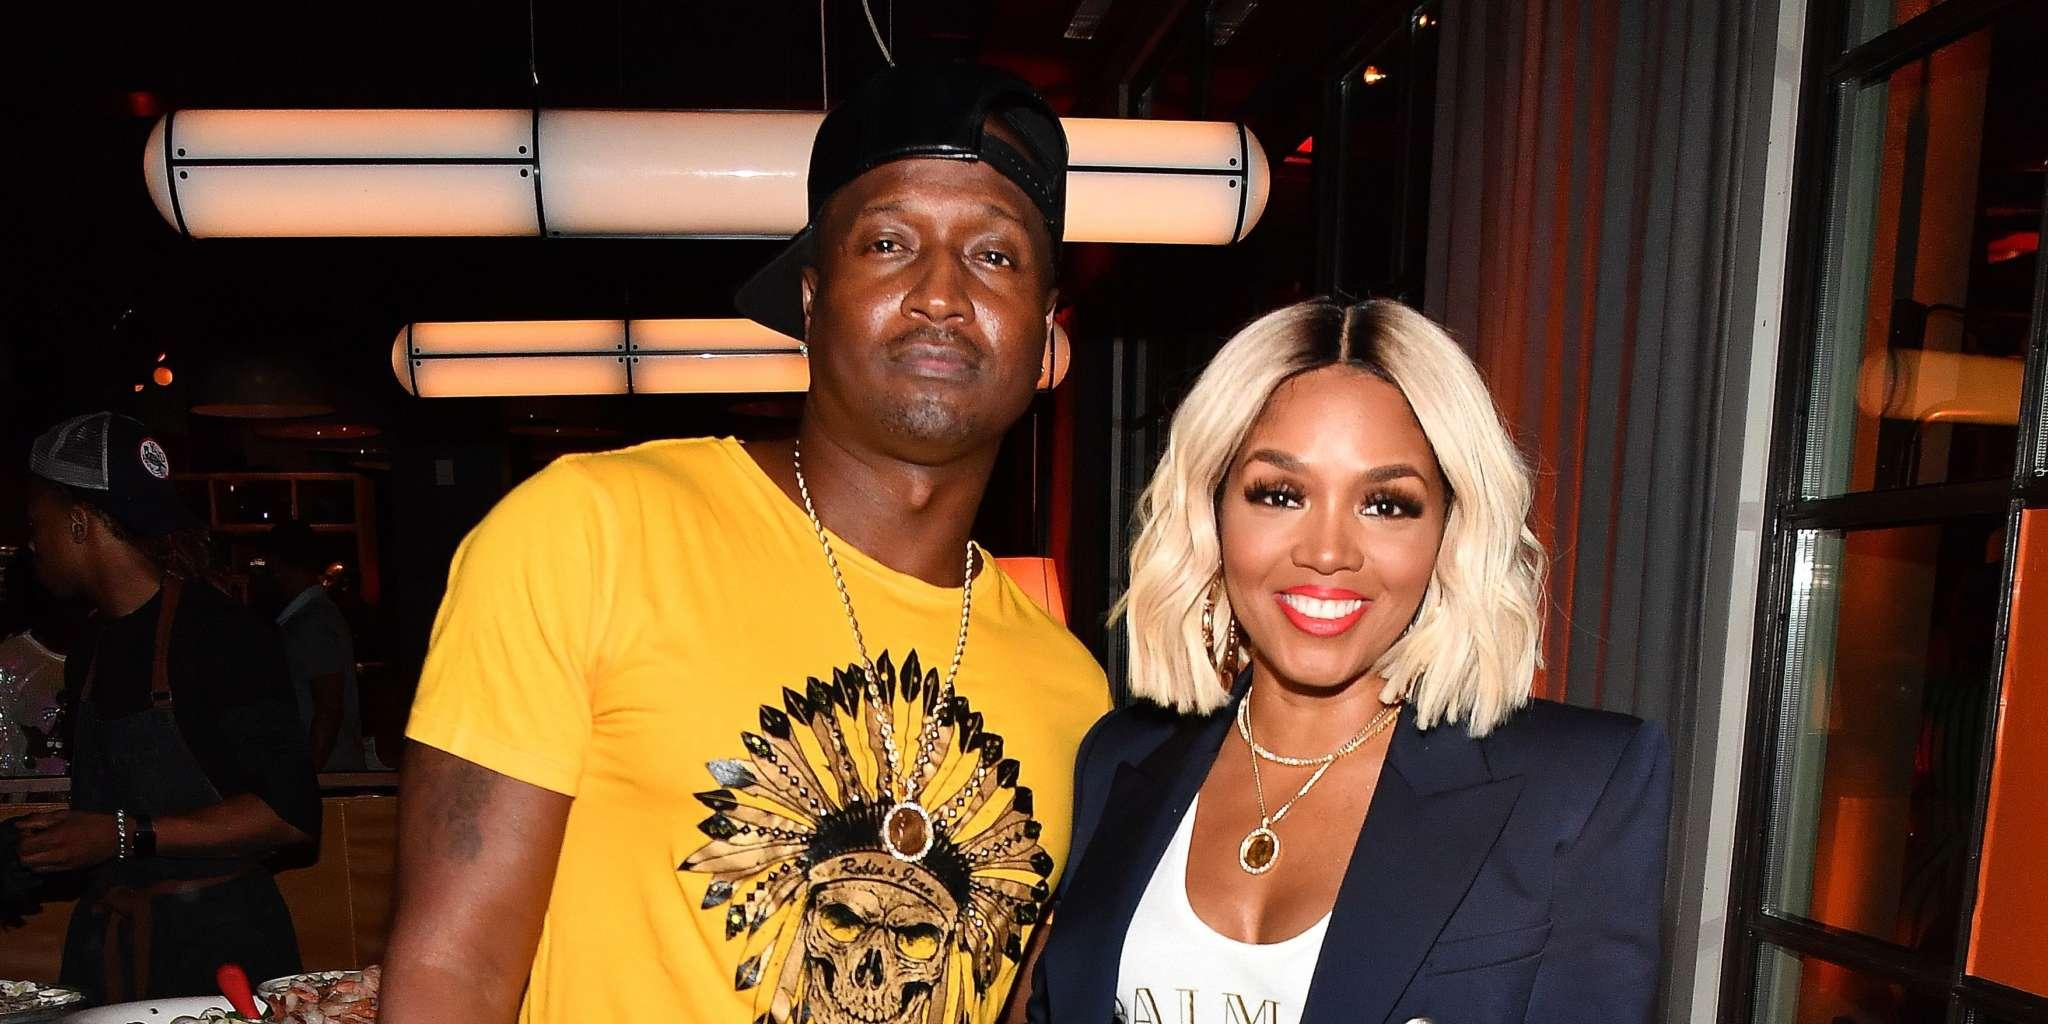 Rasheeda Frost Shares A Video In Which She's Partying With Kirk Frost For Their 20th Anniversary - Grace Hamilton Dances With The Couple